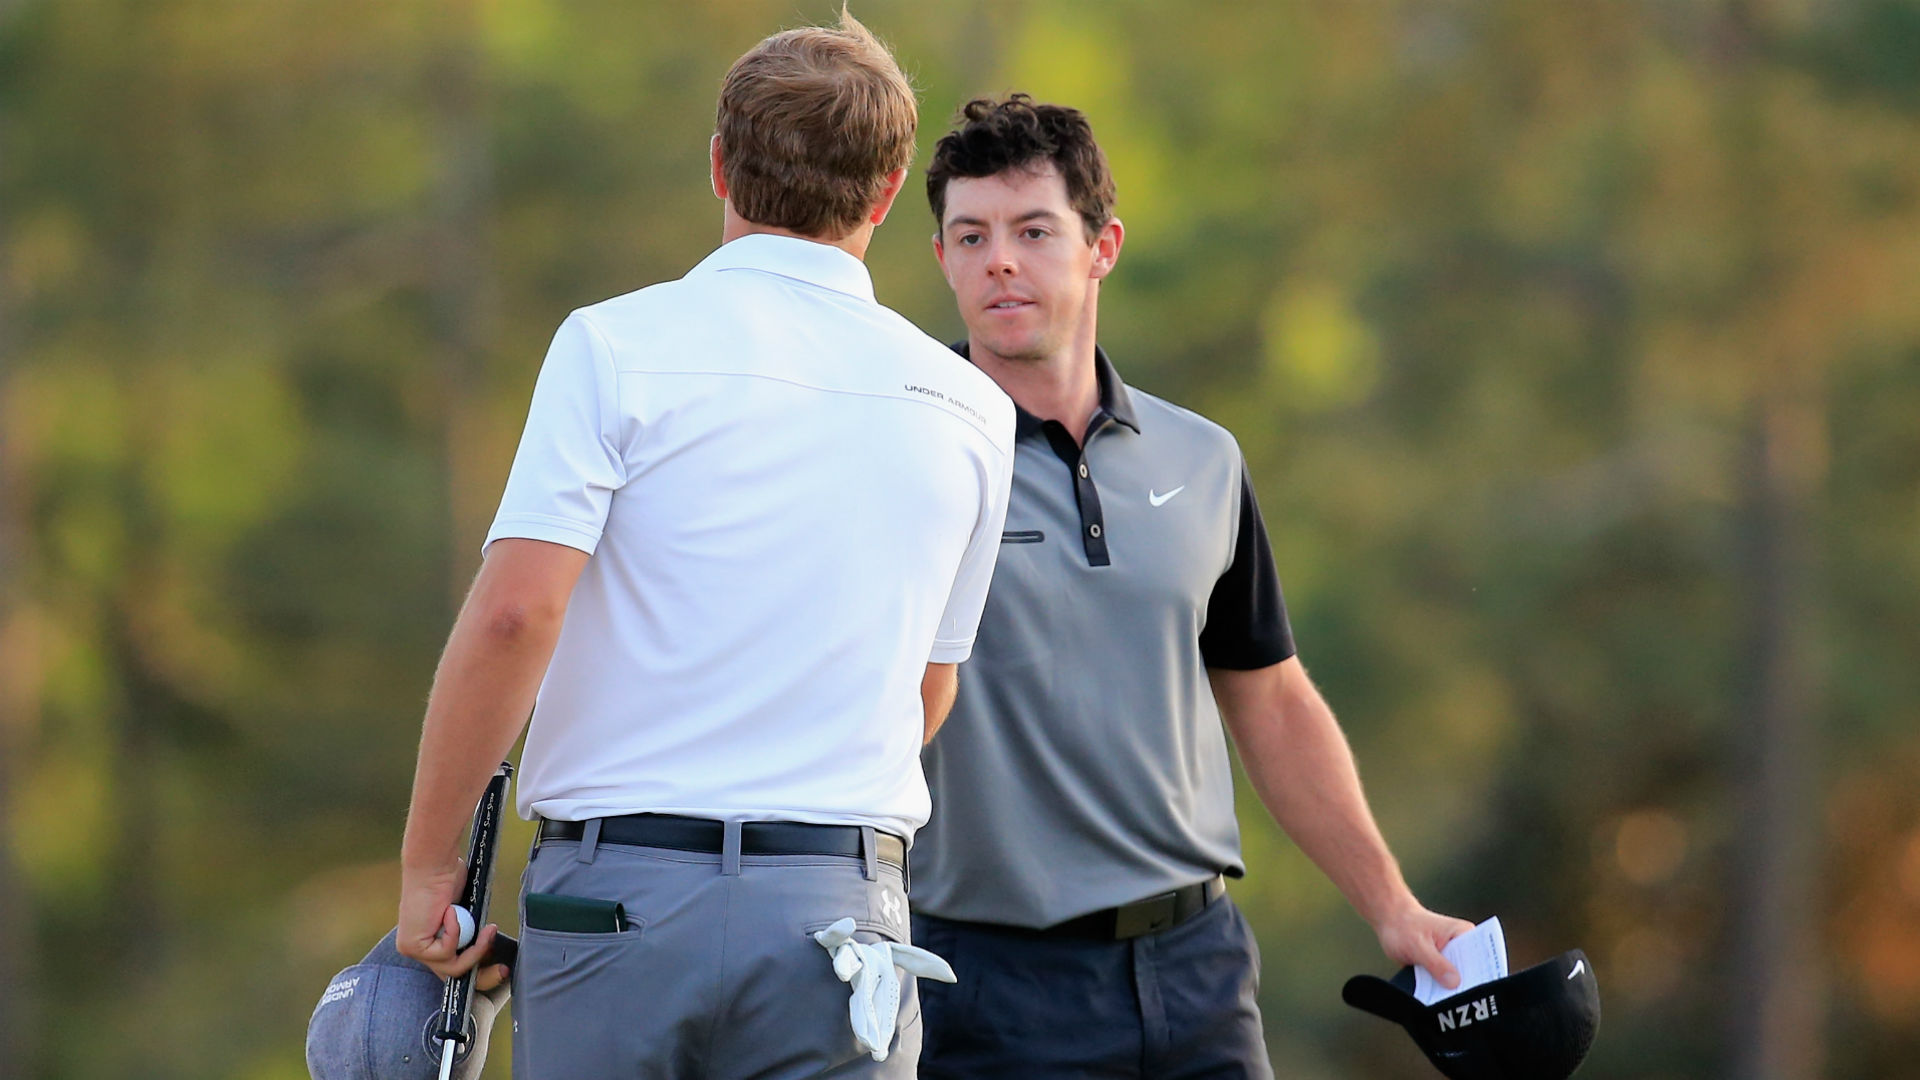 McIlroy-Rory-041315-USNews-Getty-FTR